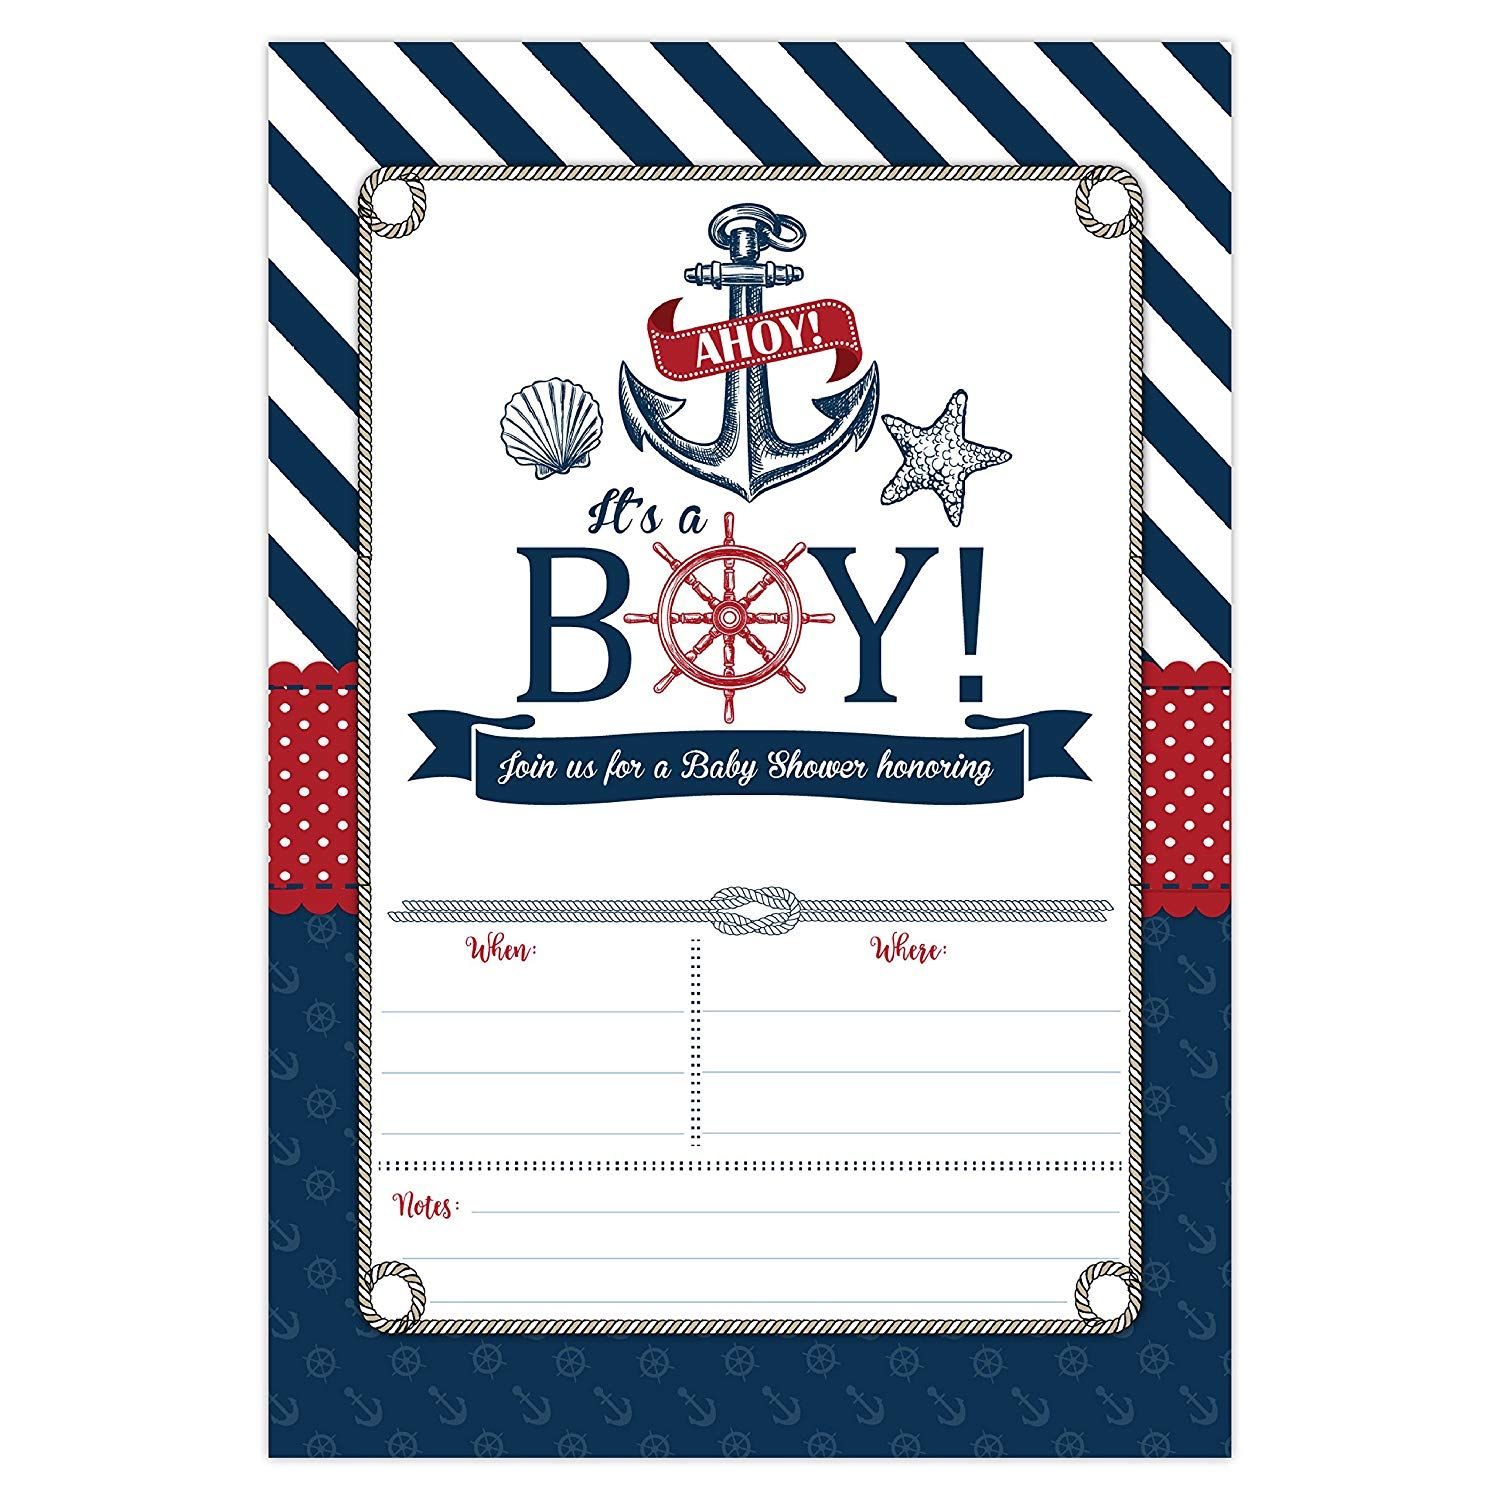 Nautical Baby Shower Invitations Ahoy It S A Boy Baby Shower Invites 20 Fill In Beach Themed Invitations And Envelopes Anchor And Seashells